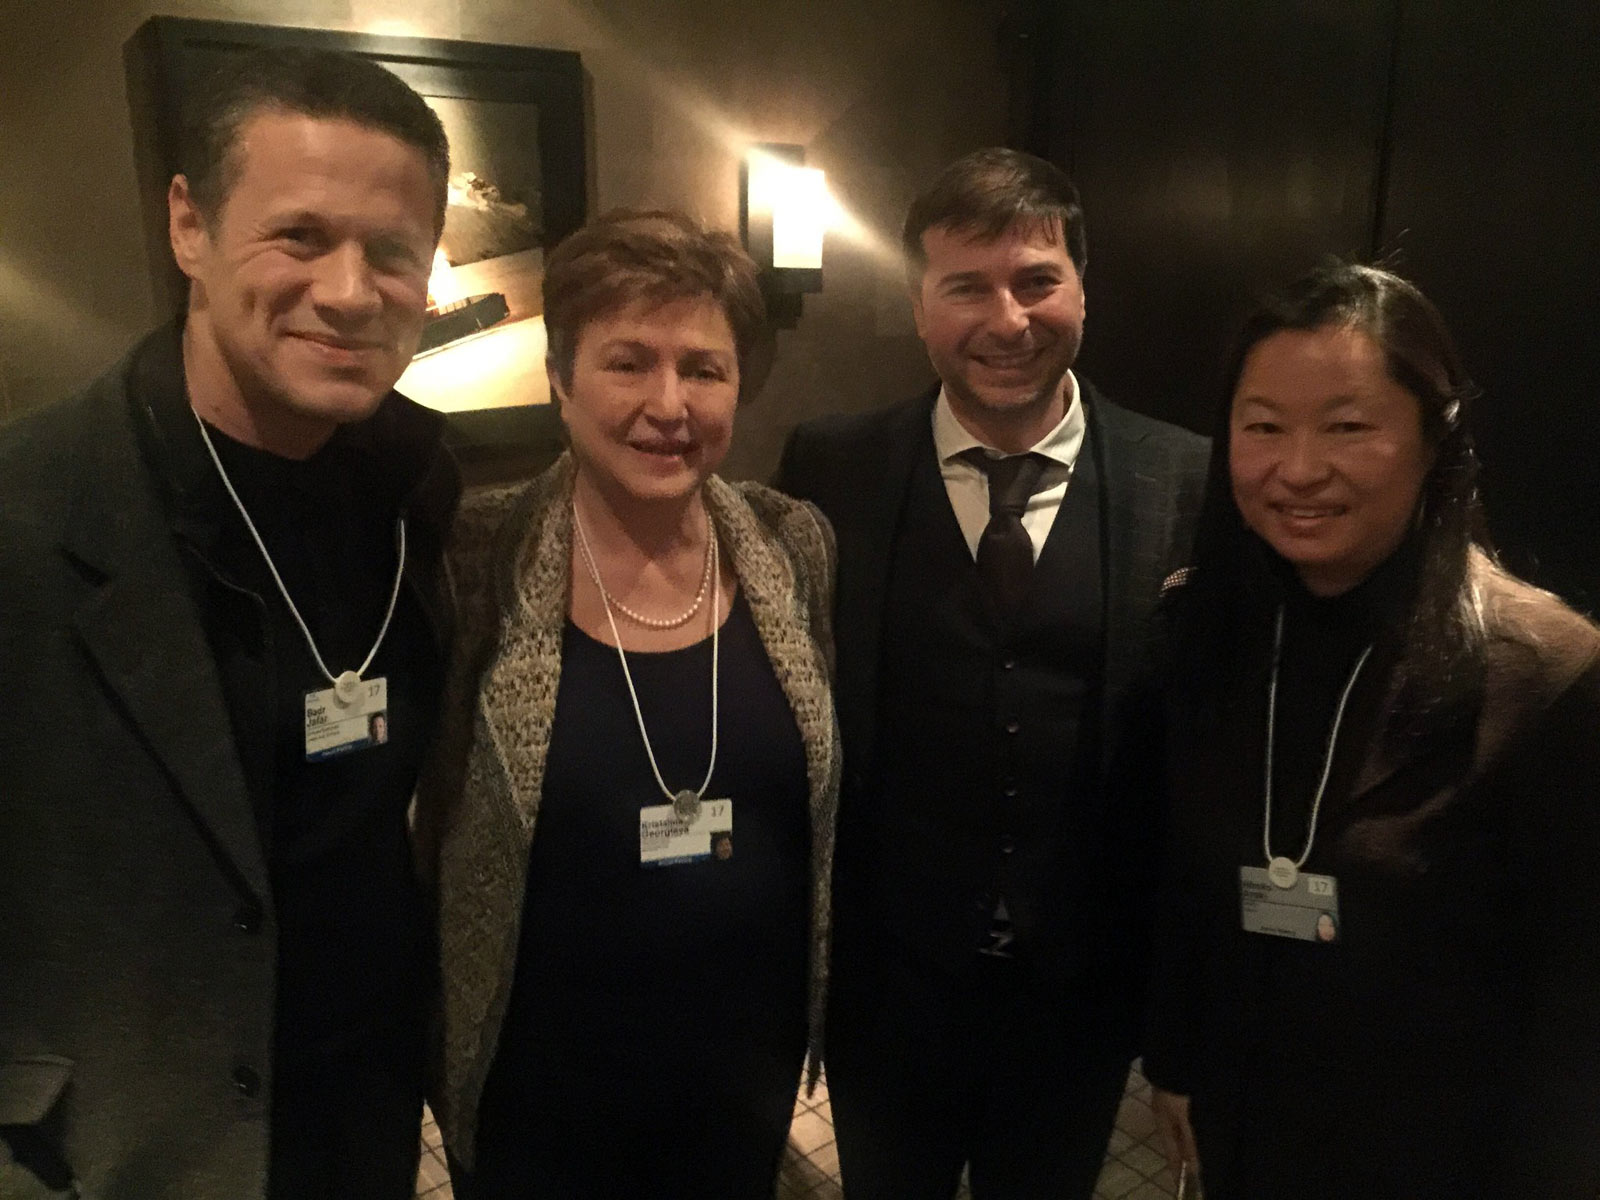 Plamen Russev with former European Commissioner and CEO of the World Bank Kristalina Georgieva